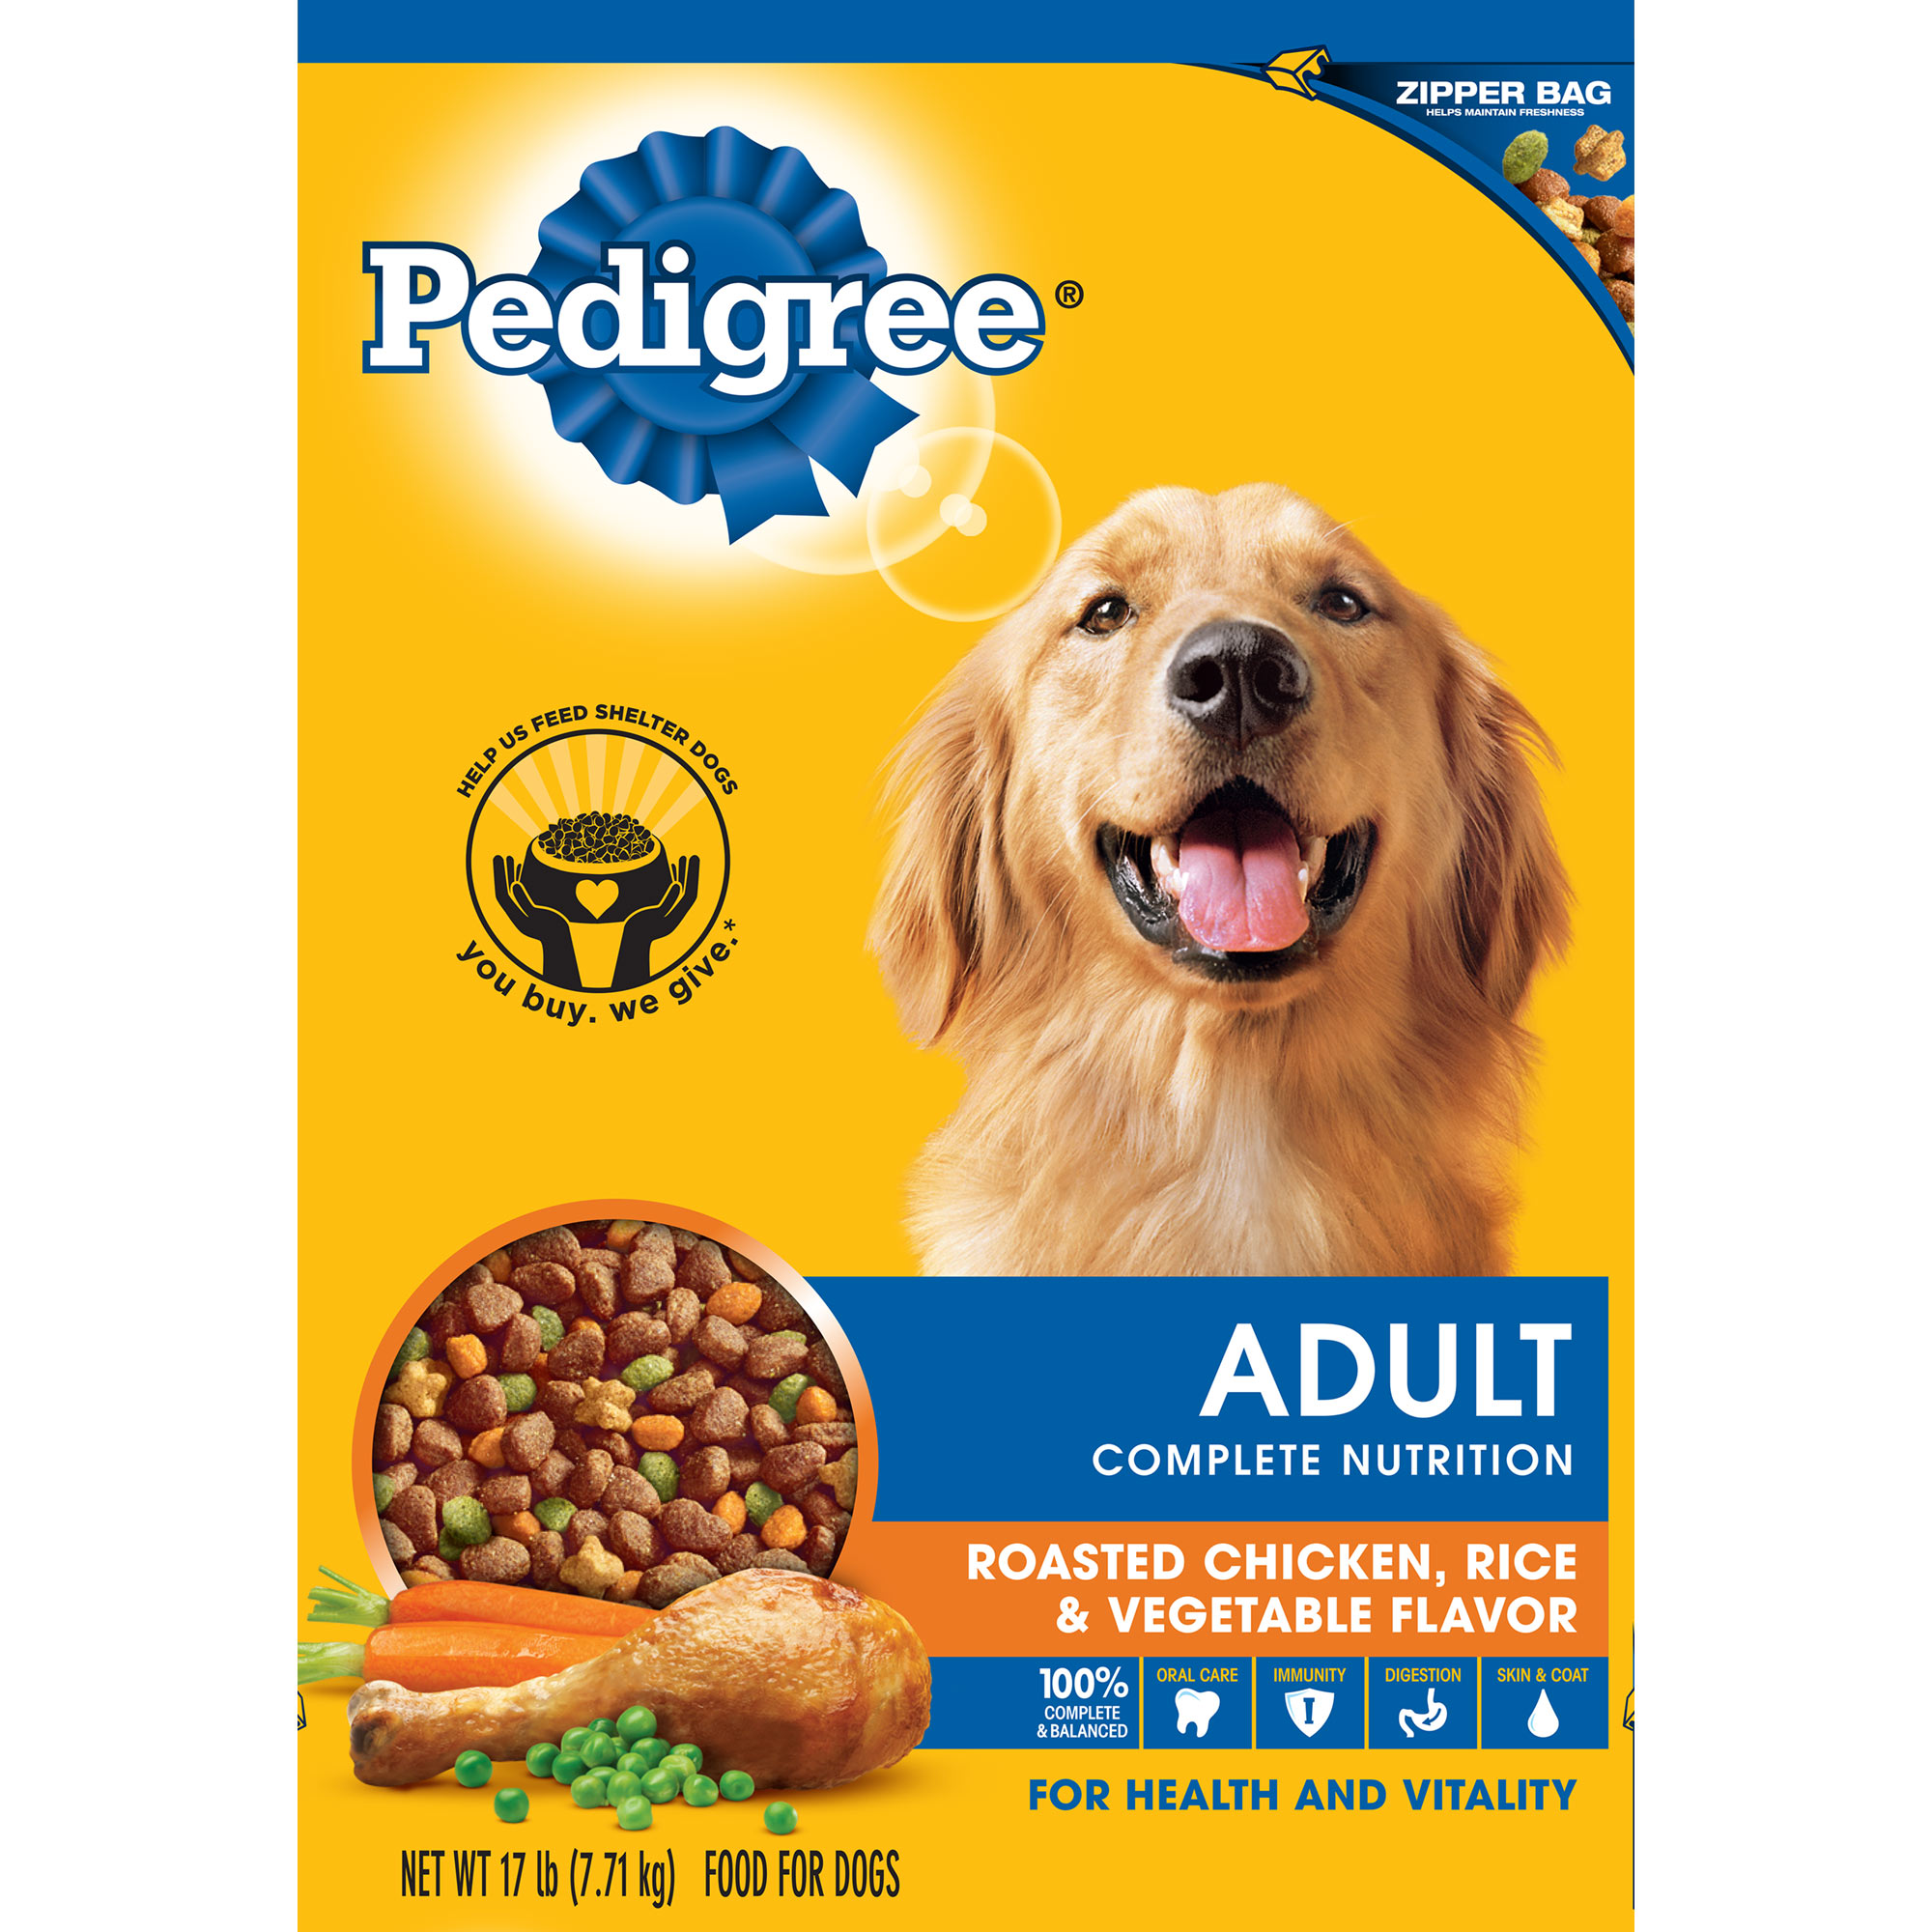 PEDIGREE Adult Roasted Chicken, Rice & Vegetable Flavor Dry Dog Food 17 Pounds